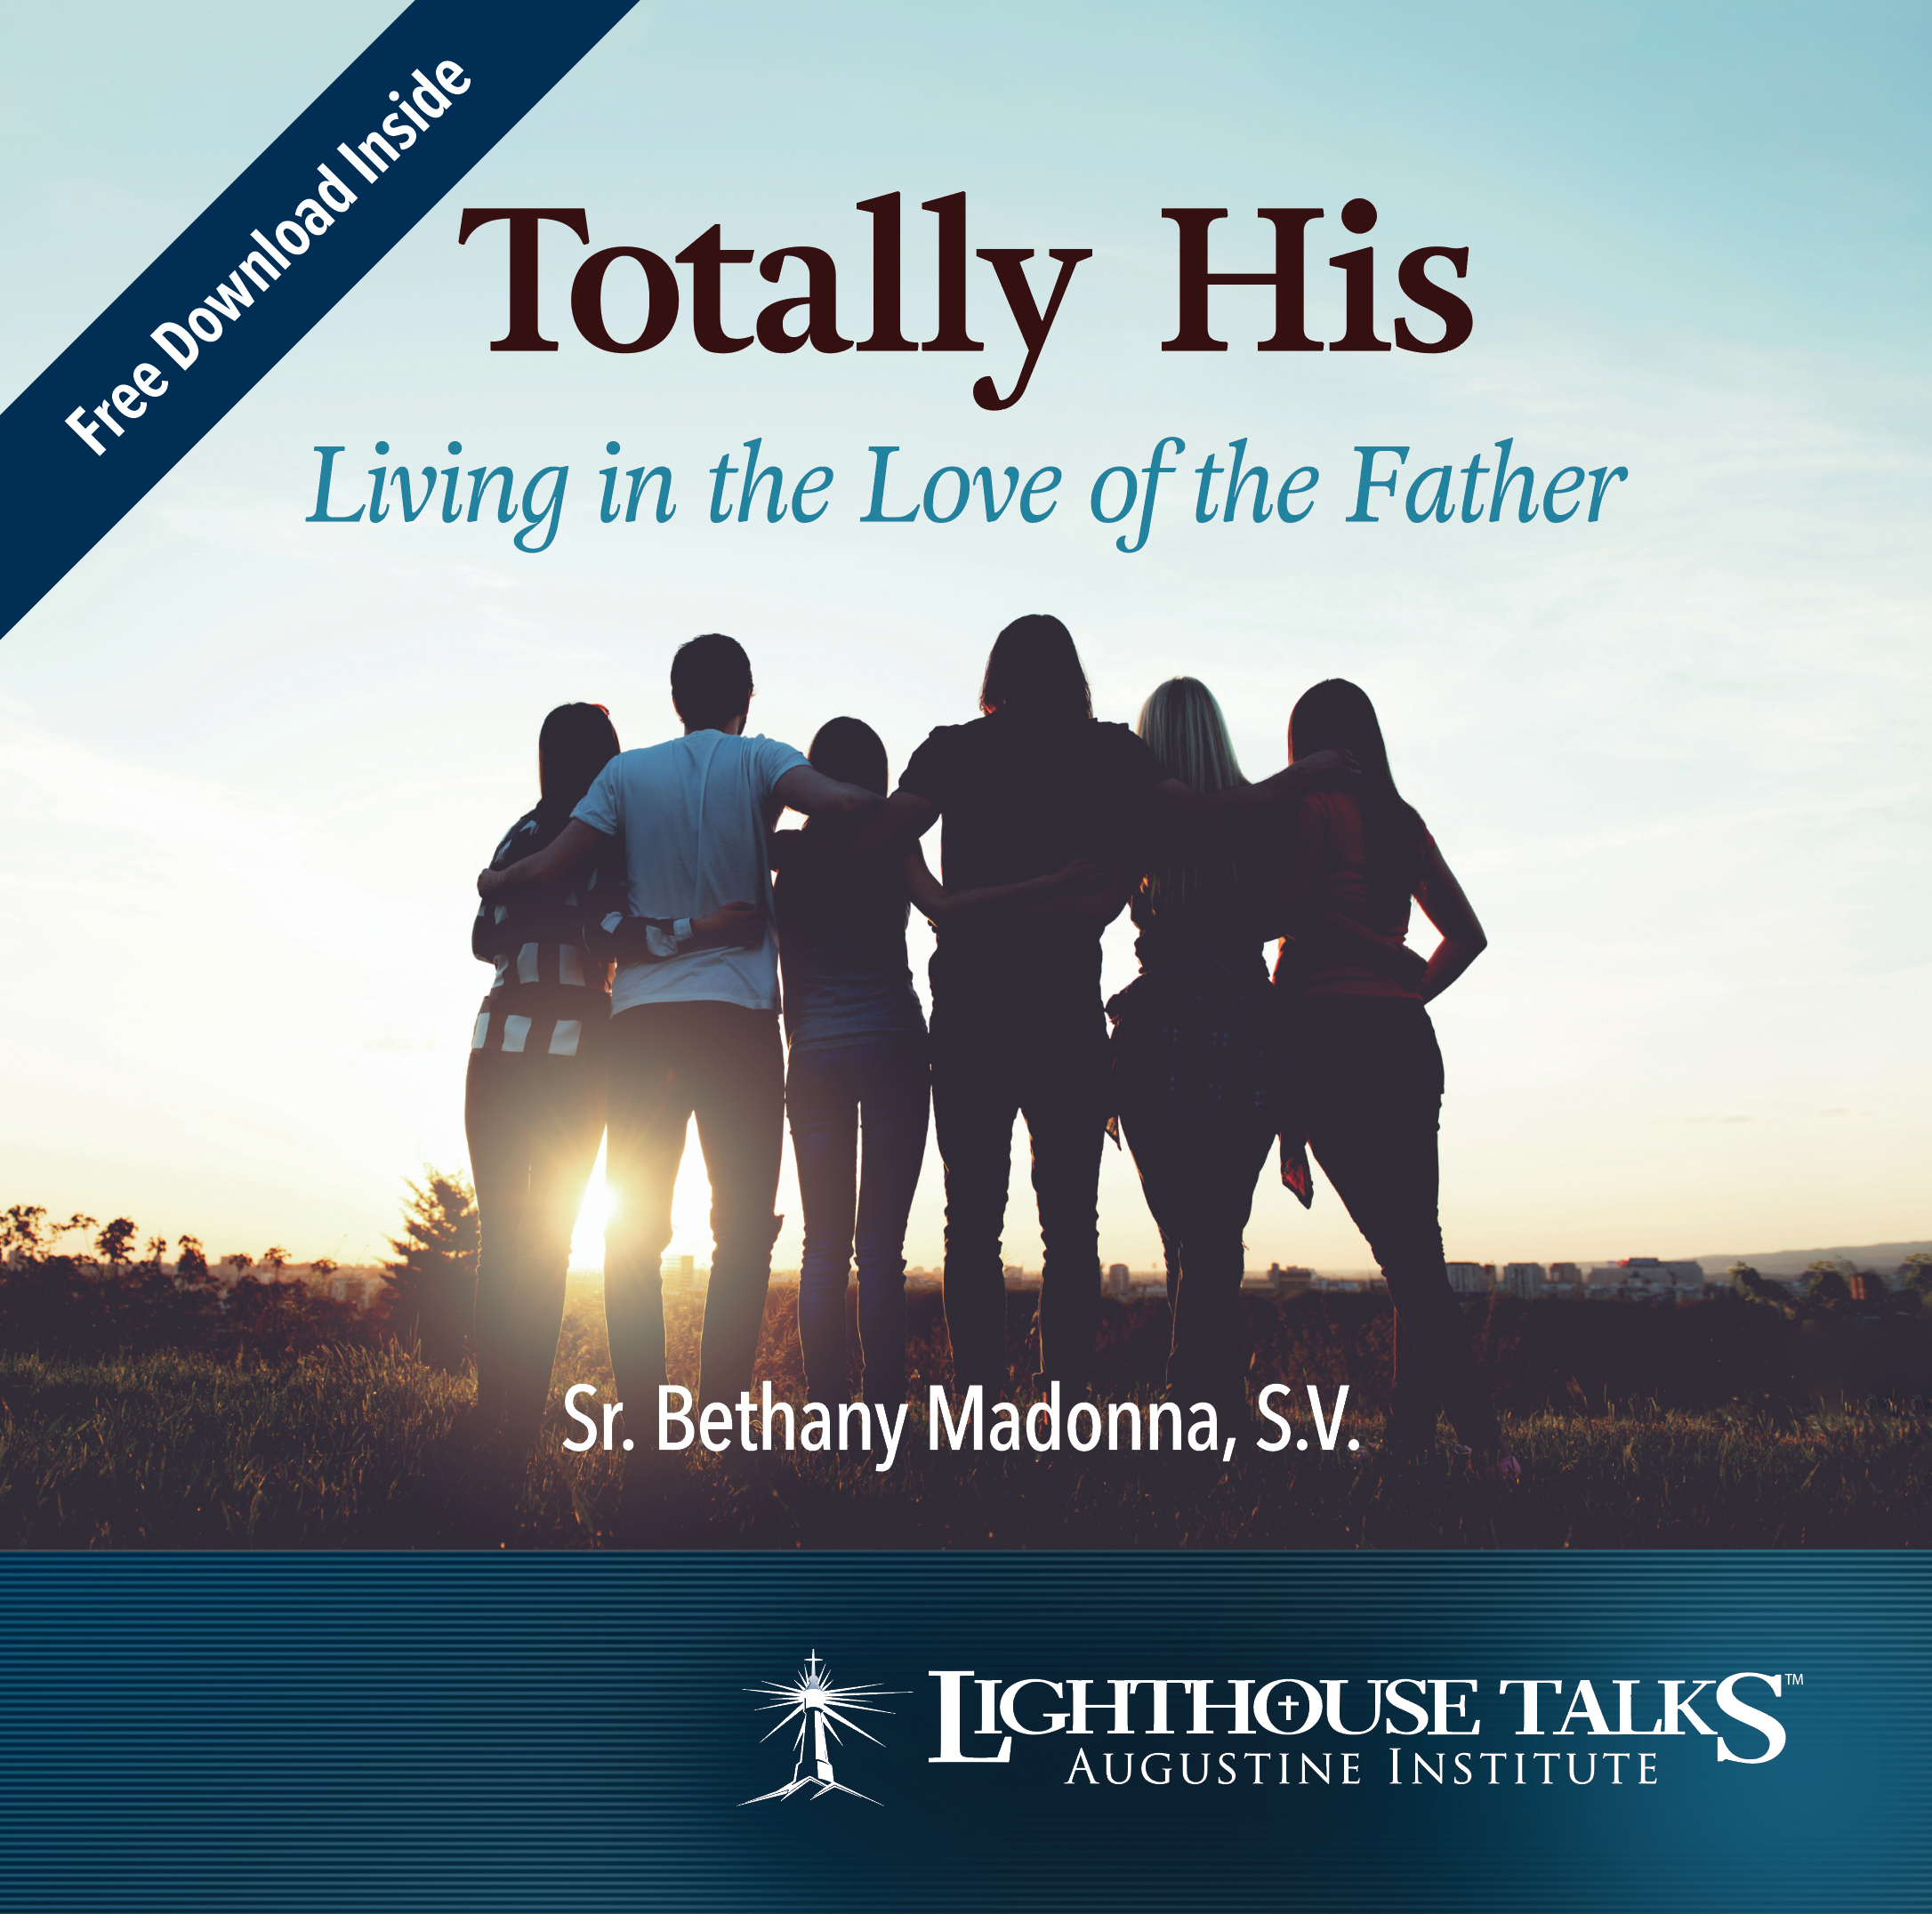 Totally His: Living in the Love of the Father - Sr. Bethany Madonna